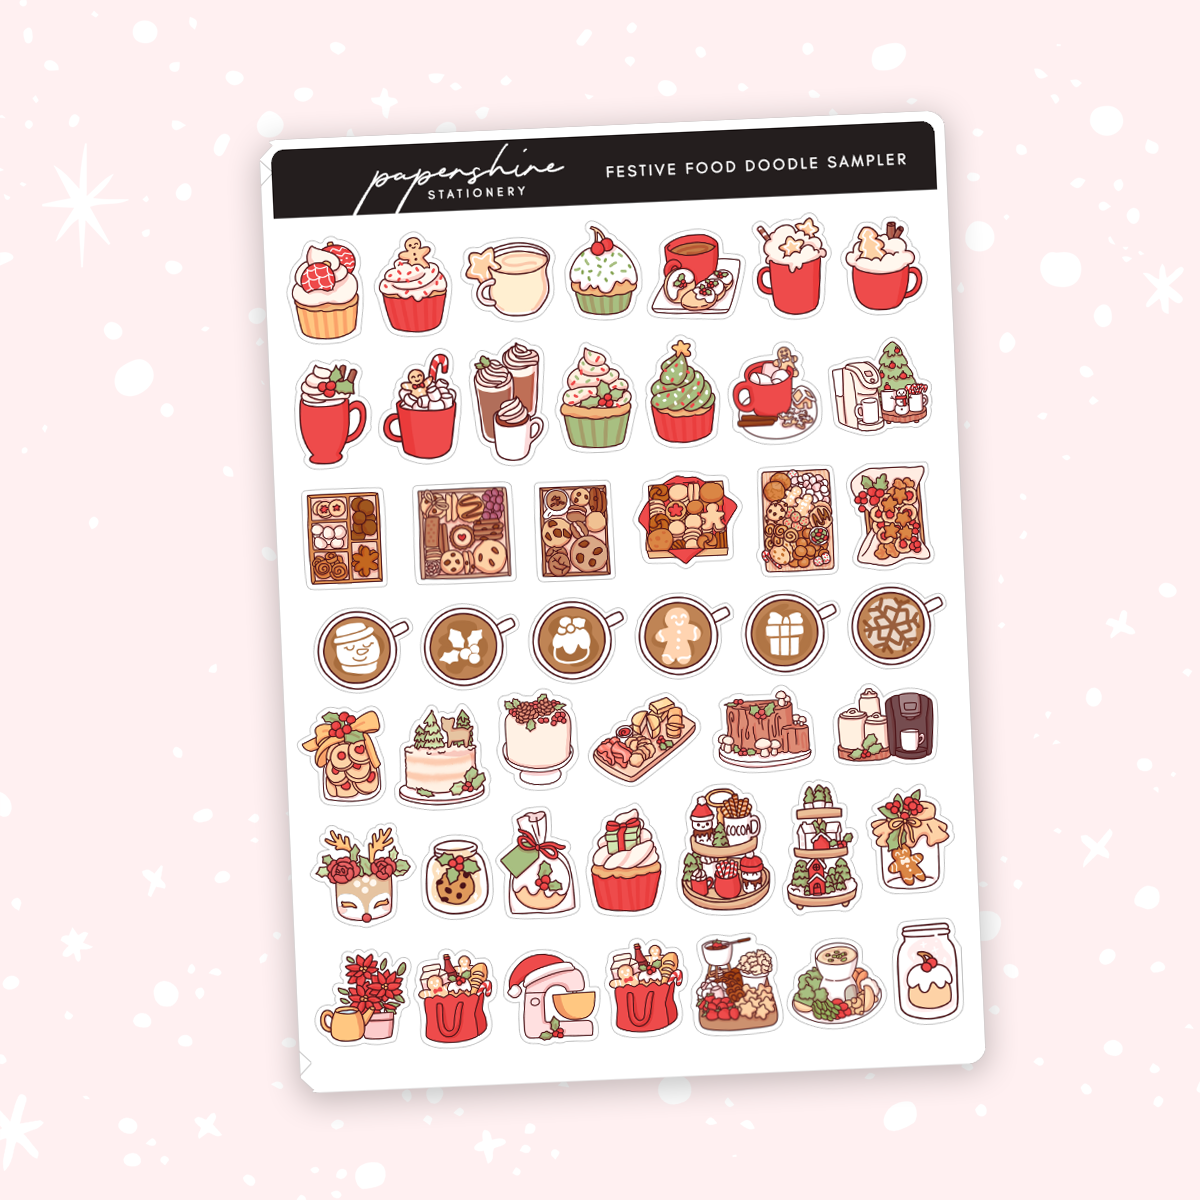 Festive Food Doodle Sampler Stickers